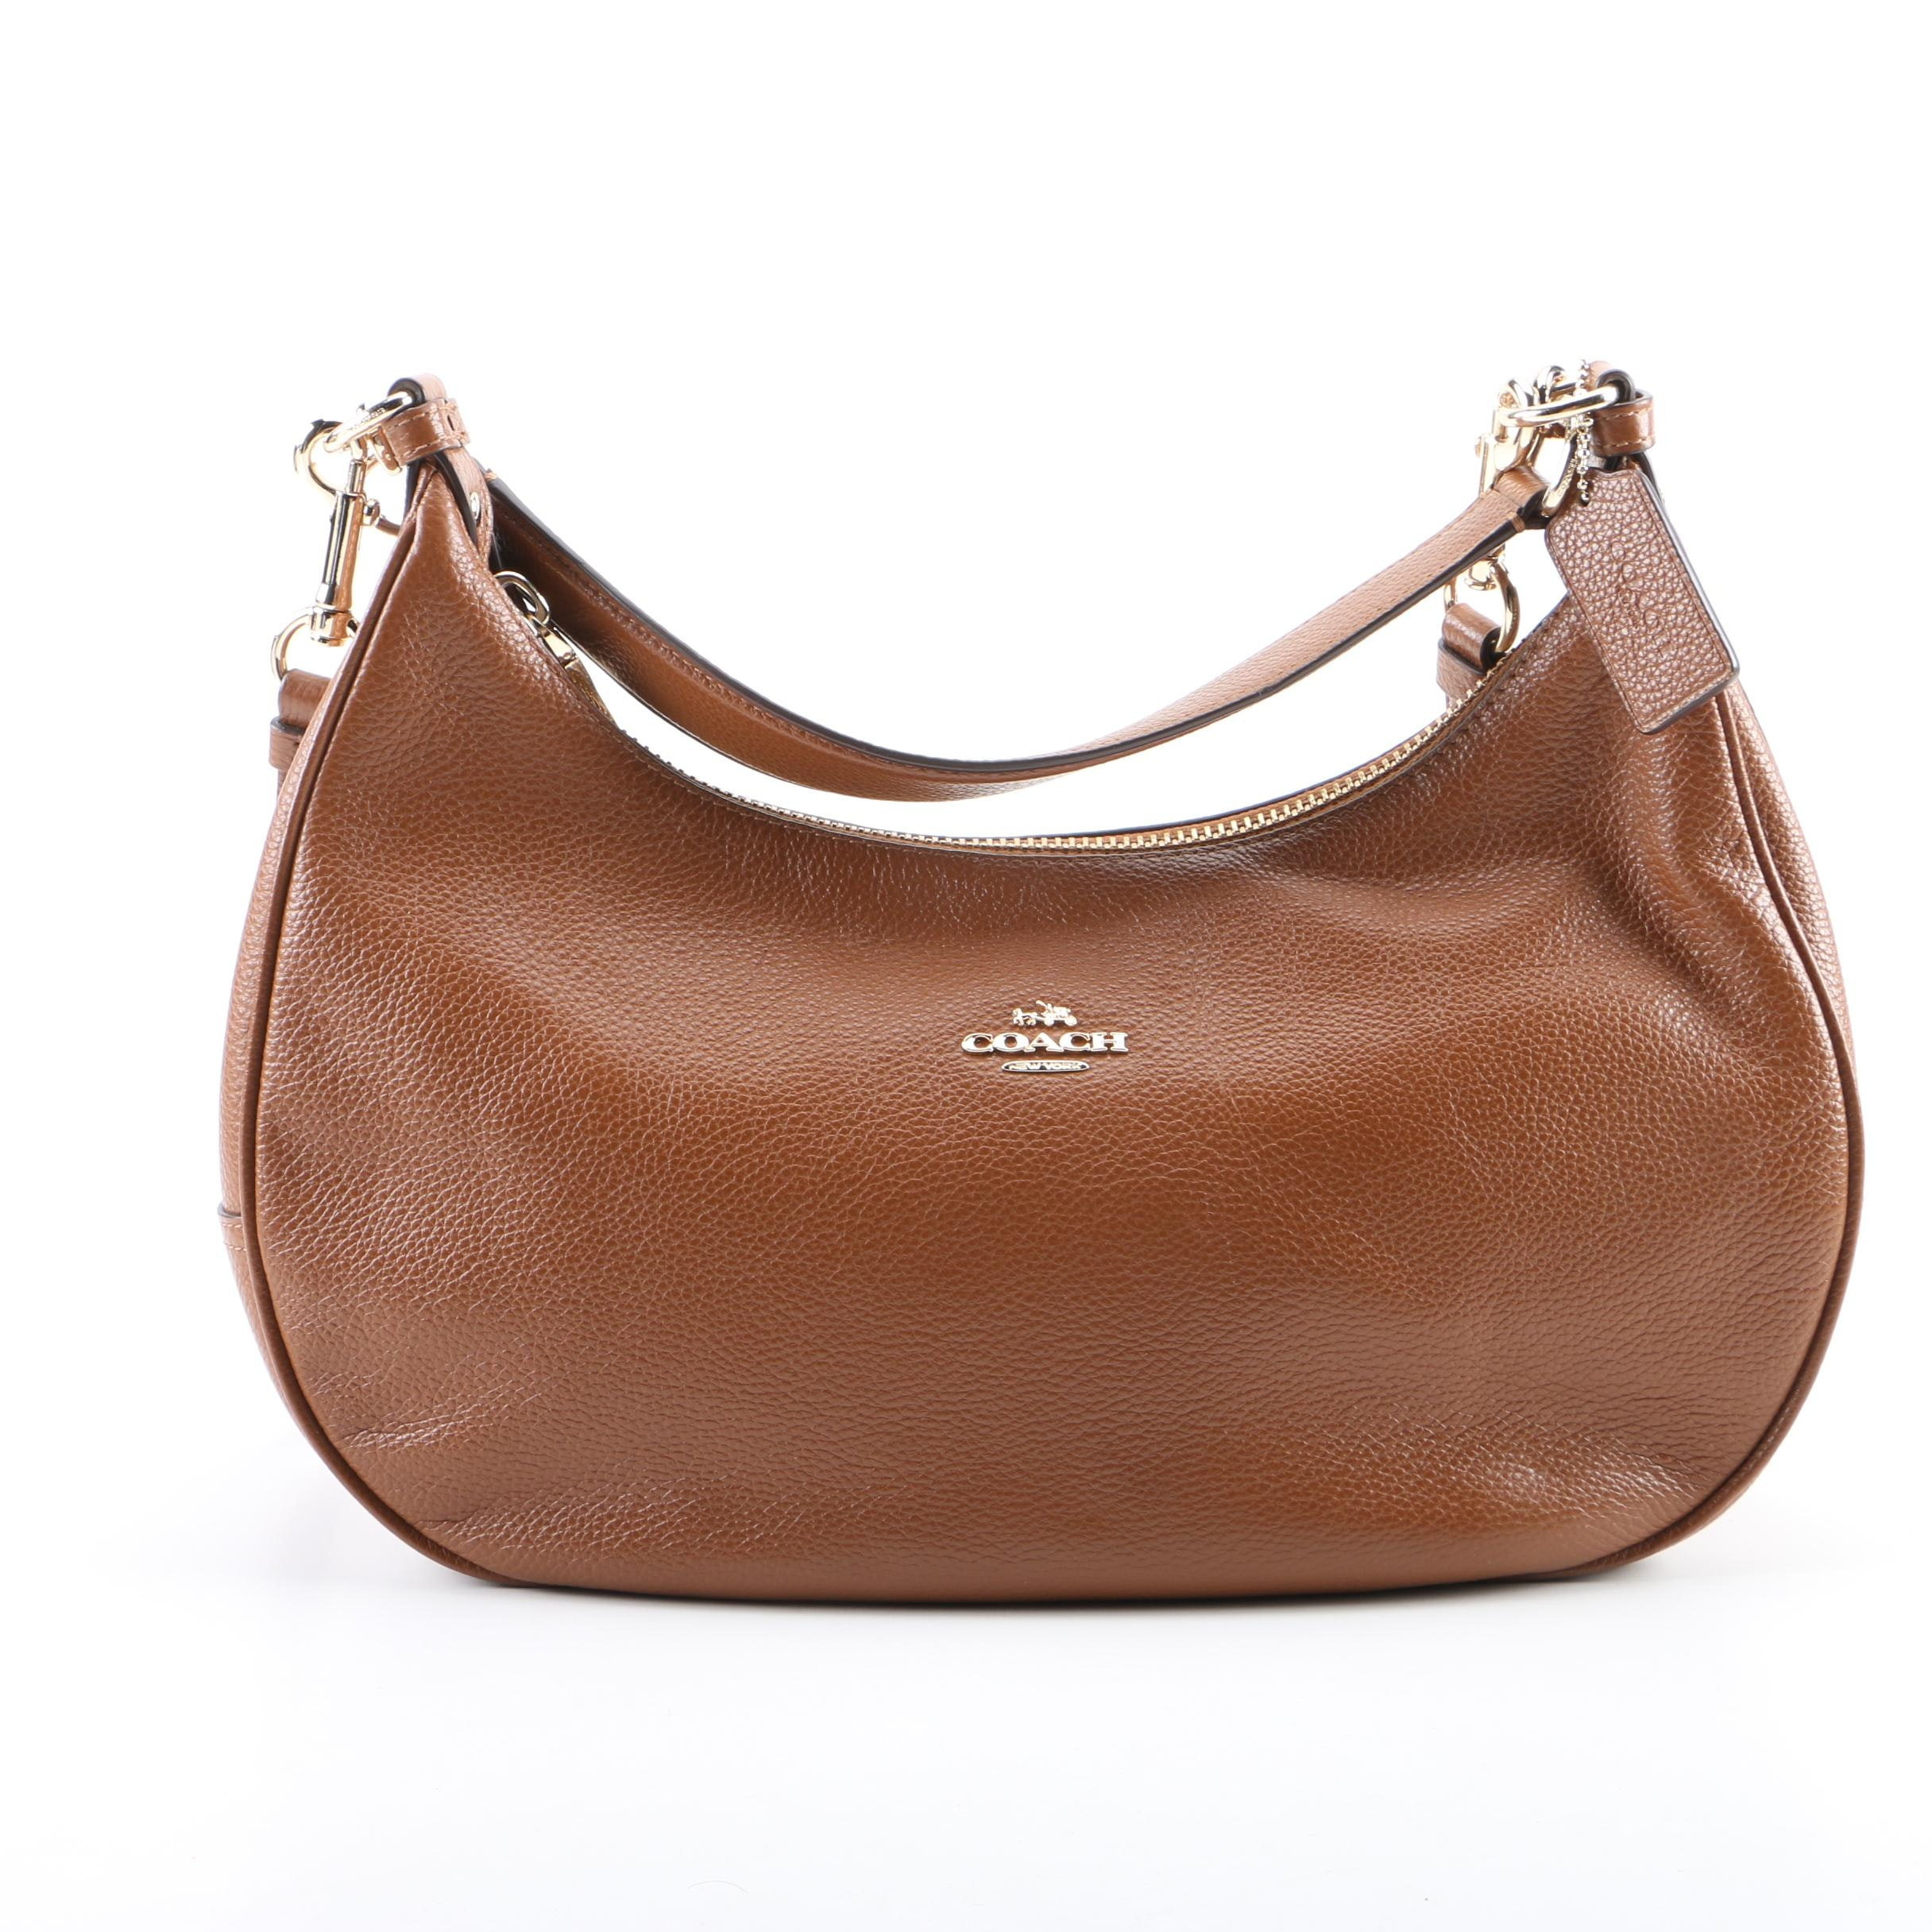 Coach Harley East West Pebbled Brown Leather Hobo Bag